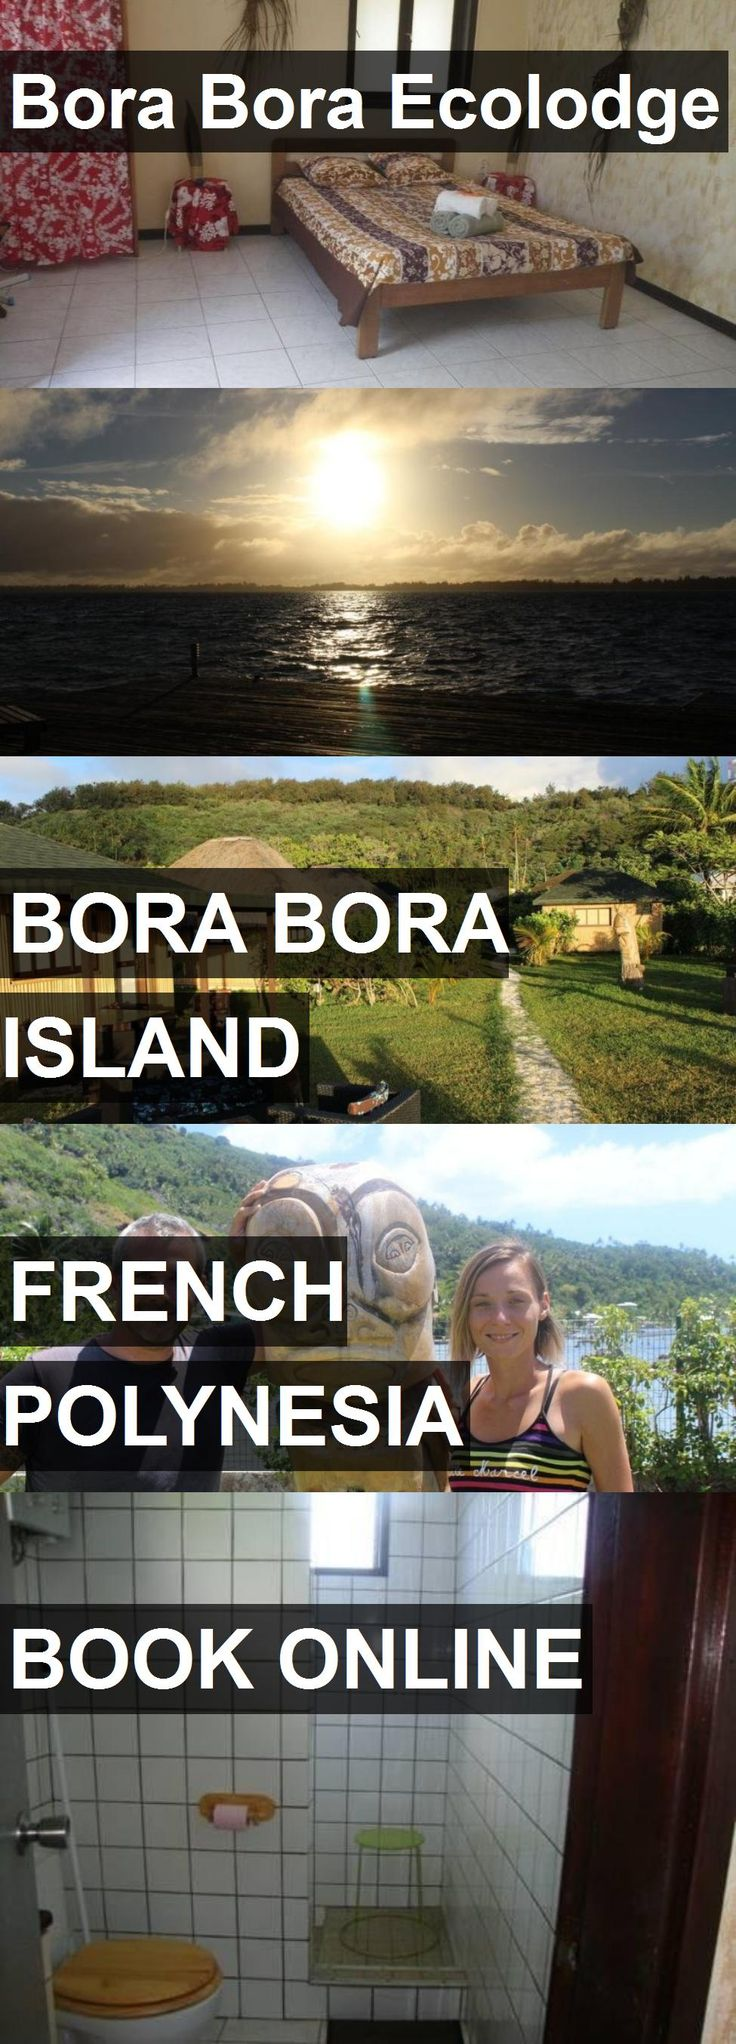 Hotel Bora Bora Ecolodge in Bora Bora Island, French Polynesia. For more information, photos, reviews and best prices please follow the link. #FrenchPolynesia #BoraBoraIsland #travel #vacation #hotel